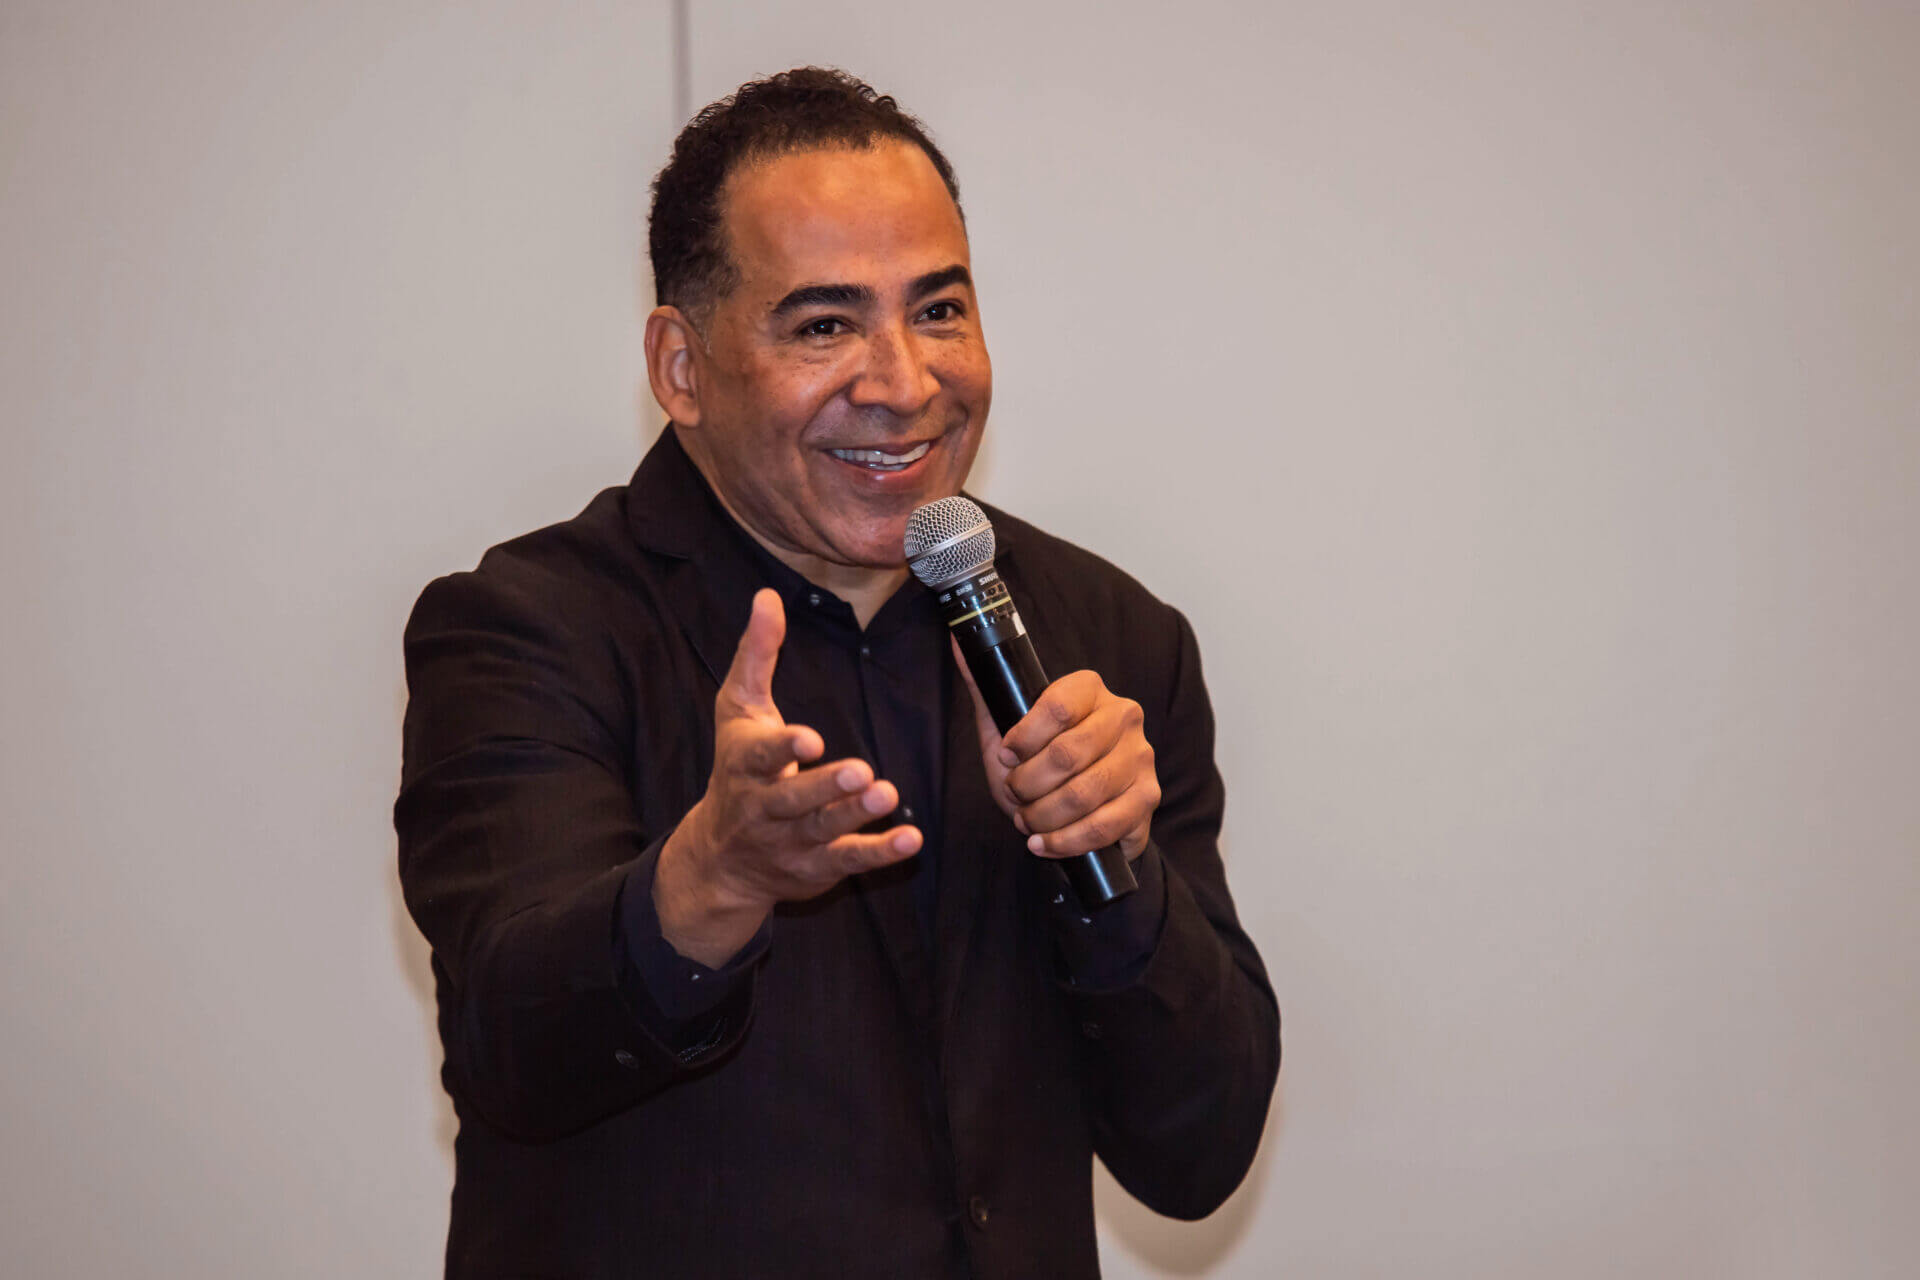 Tim Storey talking into a microphone